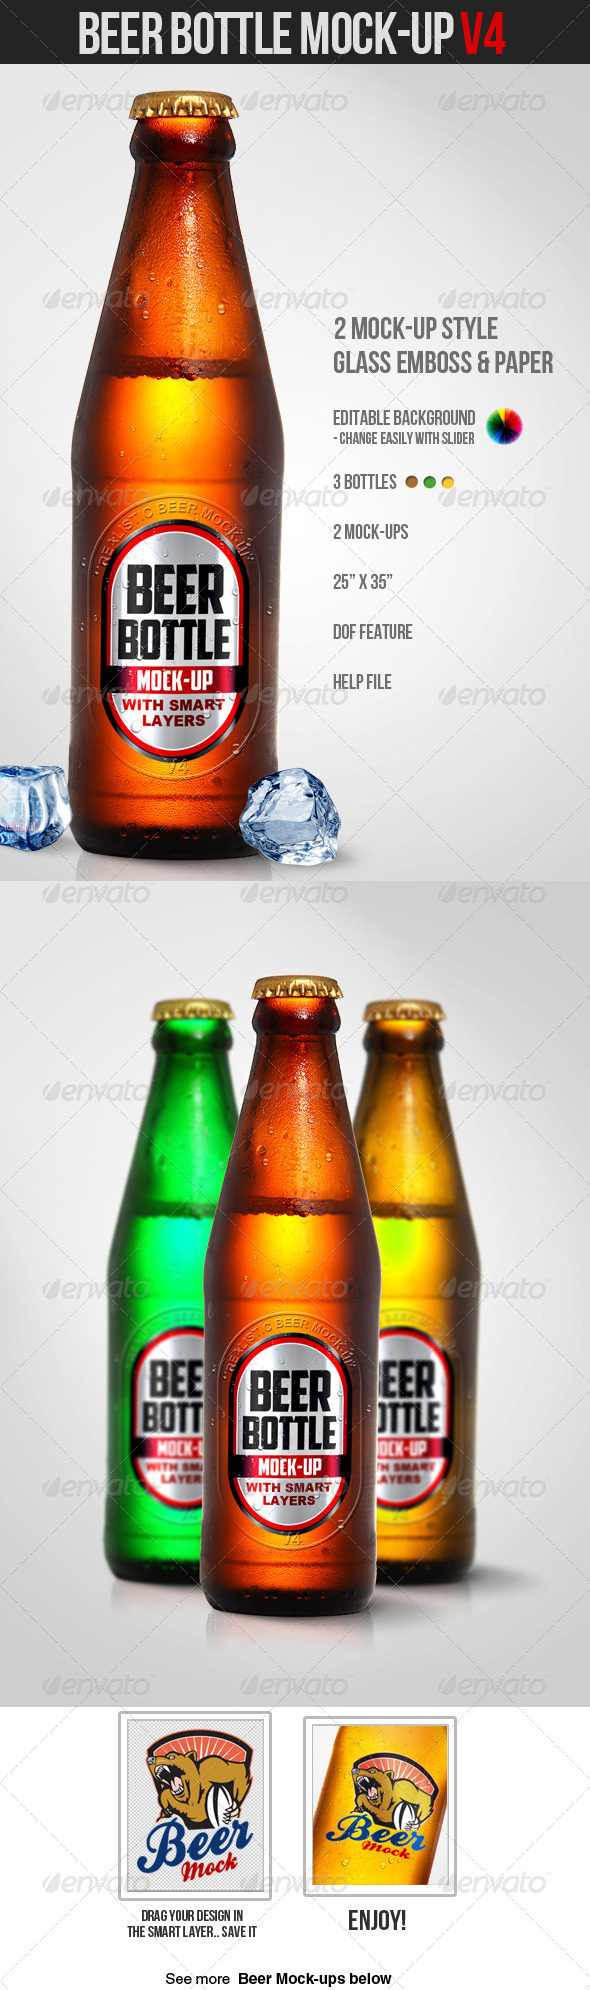 Beer Bottle Mock-Up V4 - Product Mock-Ups Graphics